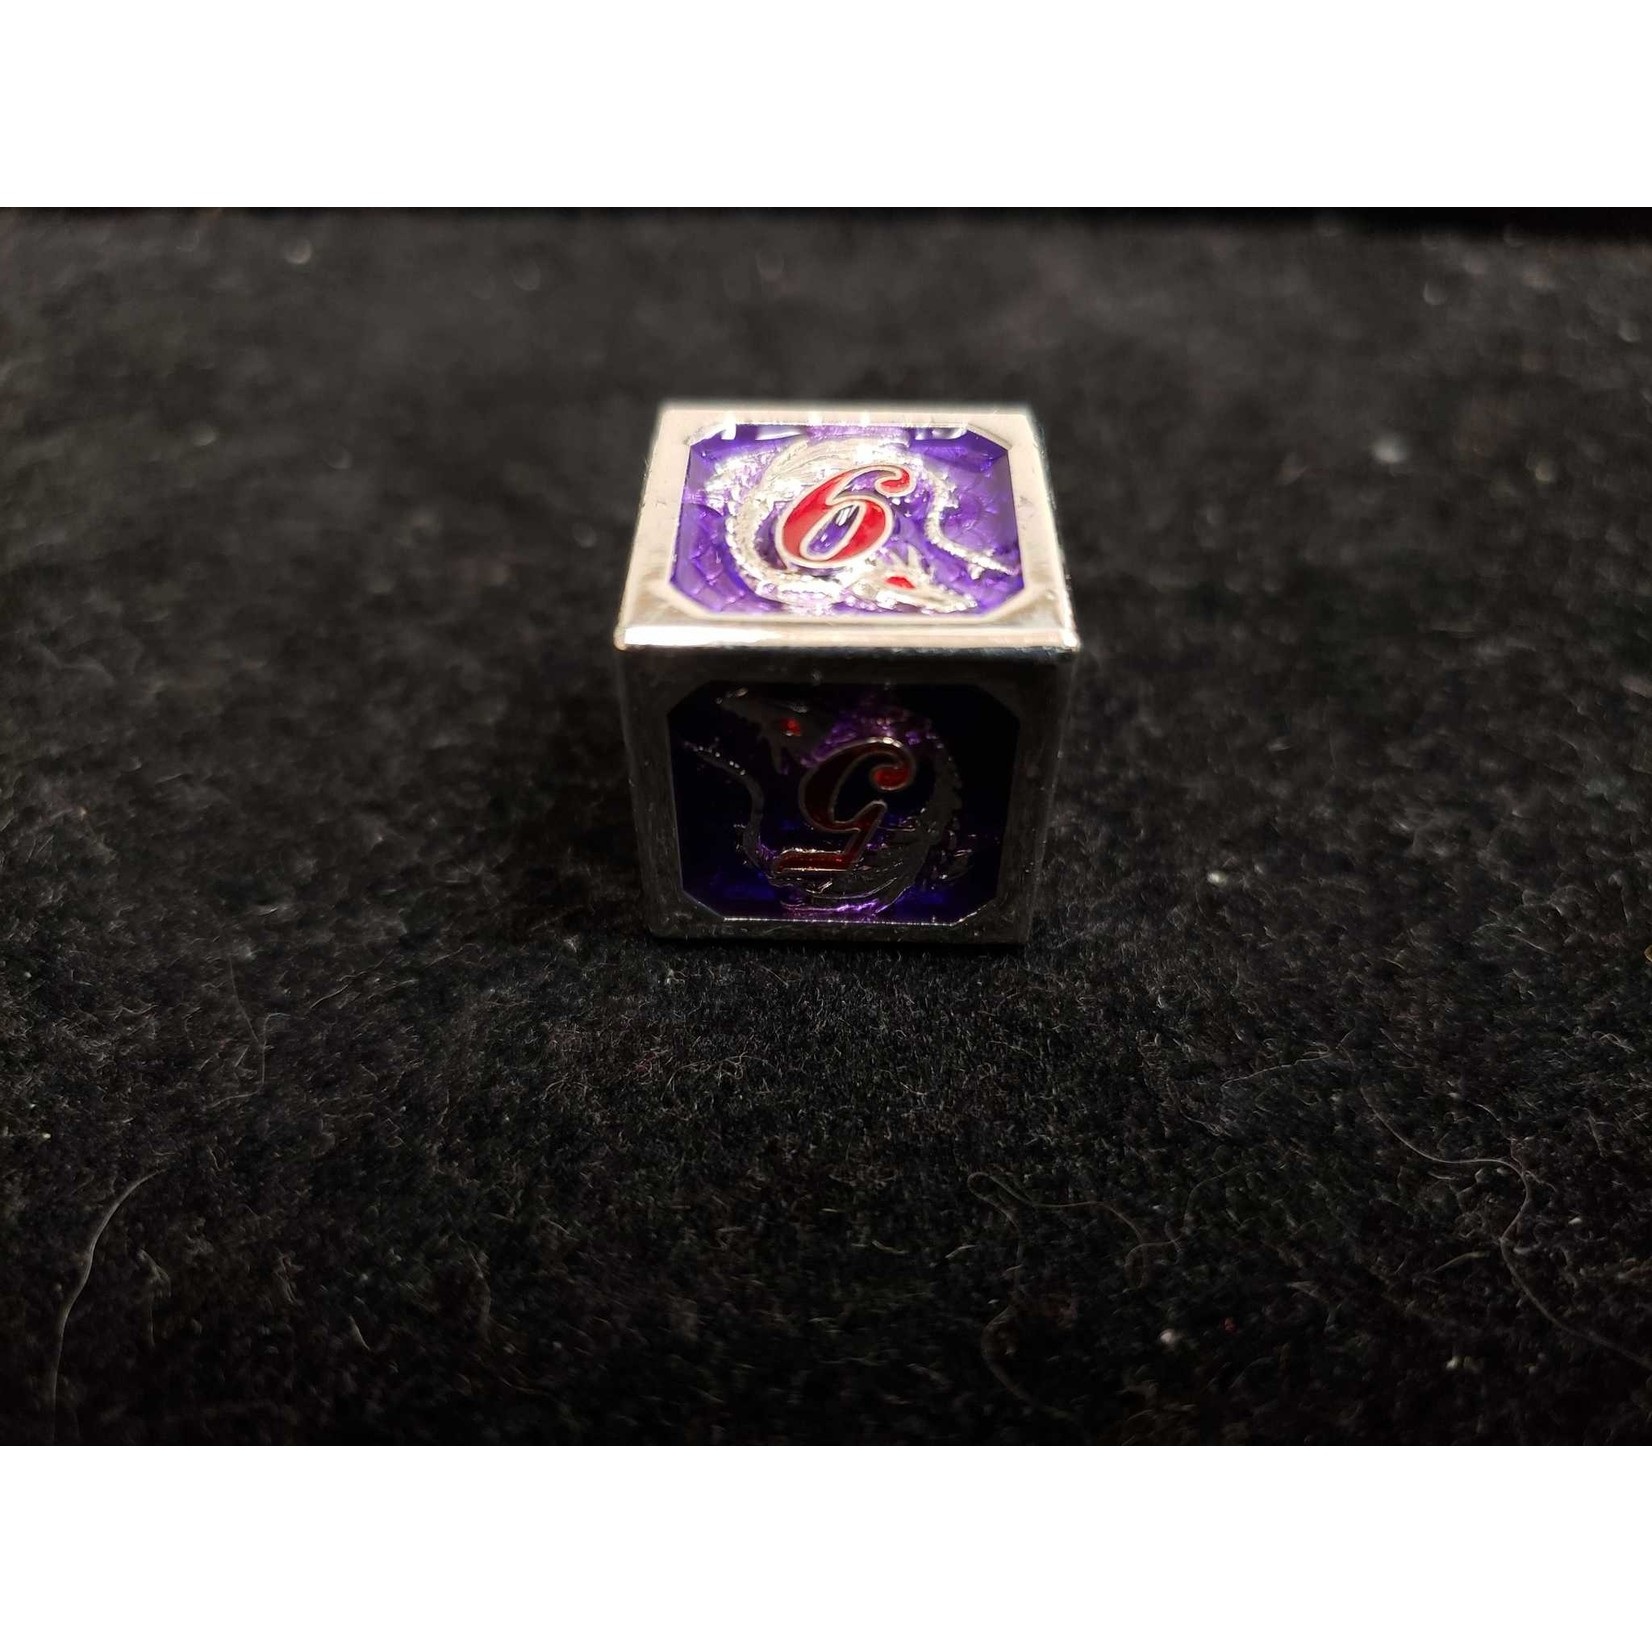 Hymgho Dice US Hymgho: D6 Silver and Purple with Red Lettering Solid Metal Dragon Die